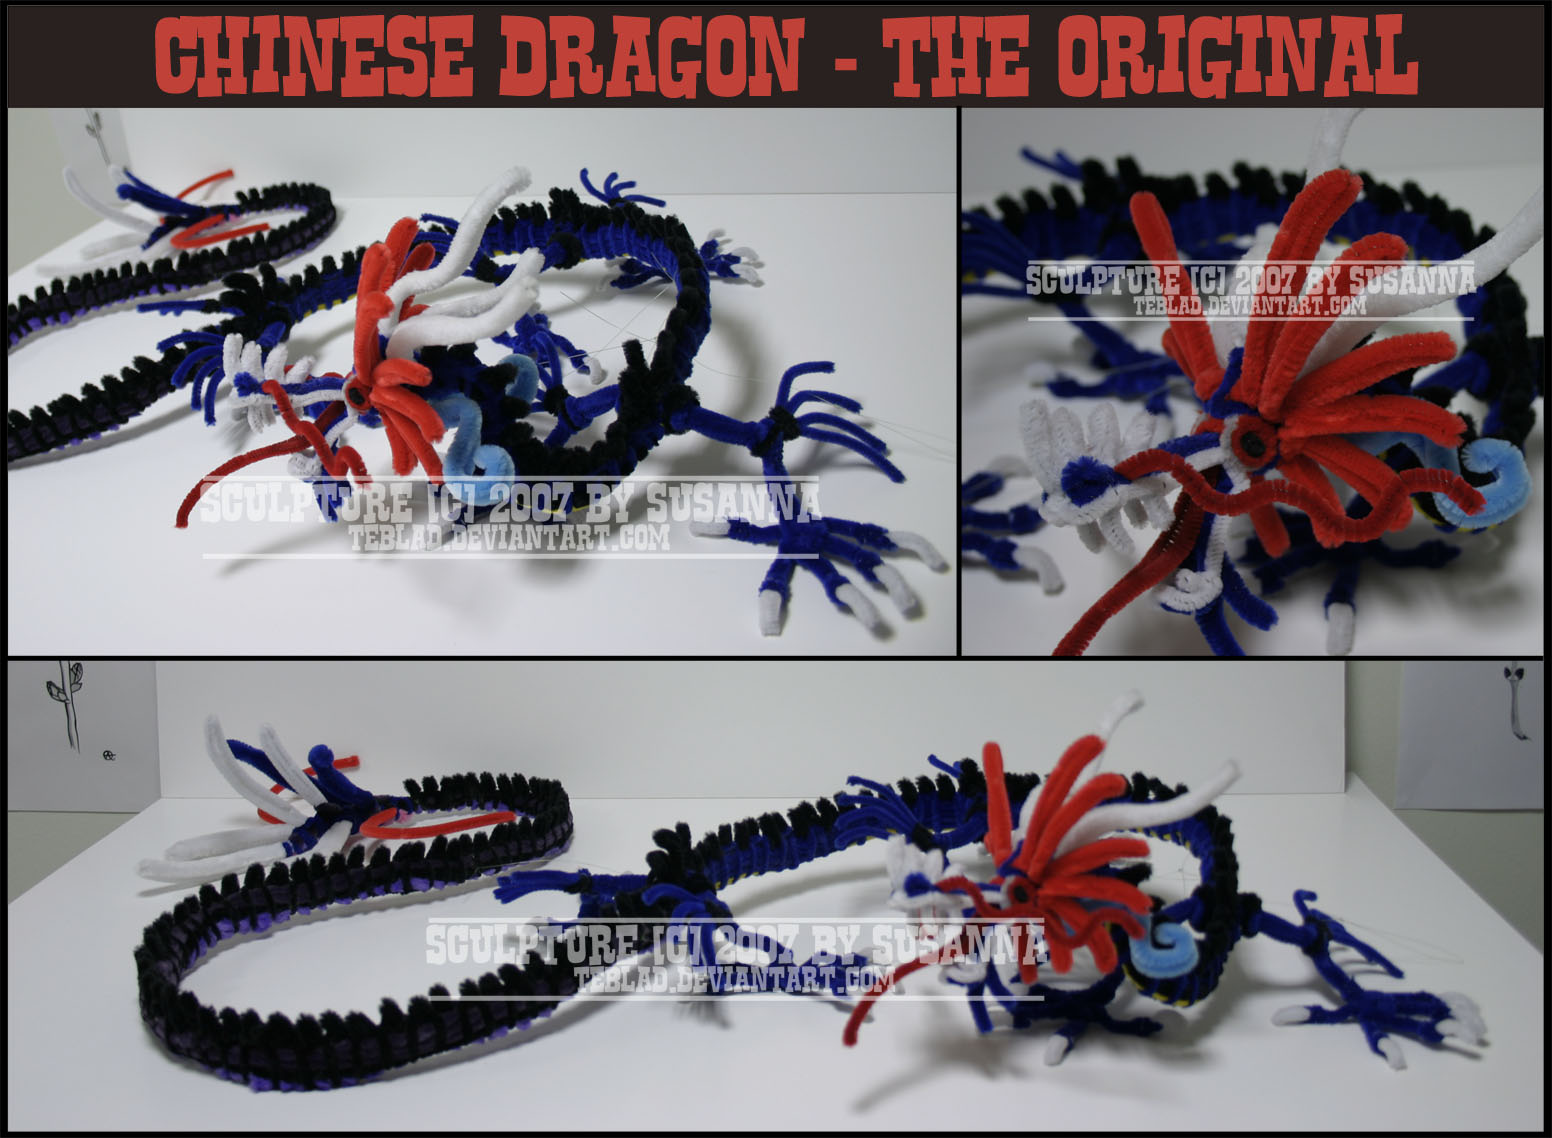 The original chinese dragon by teblad